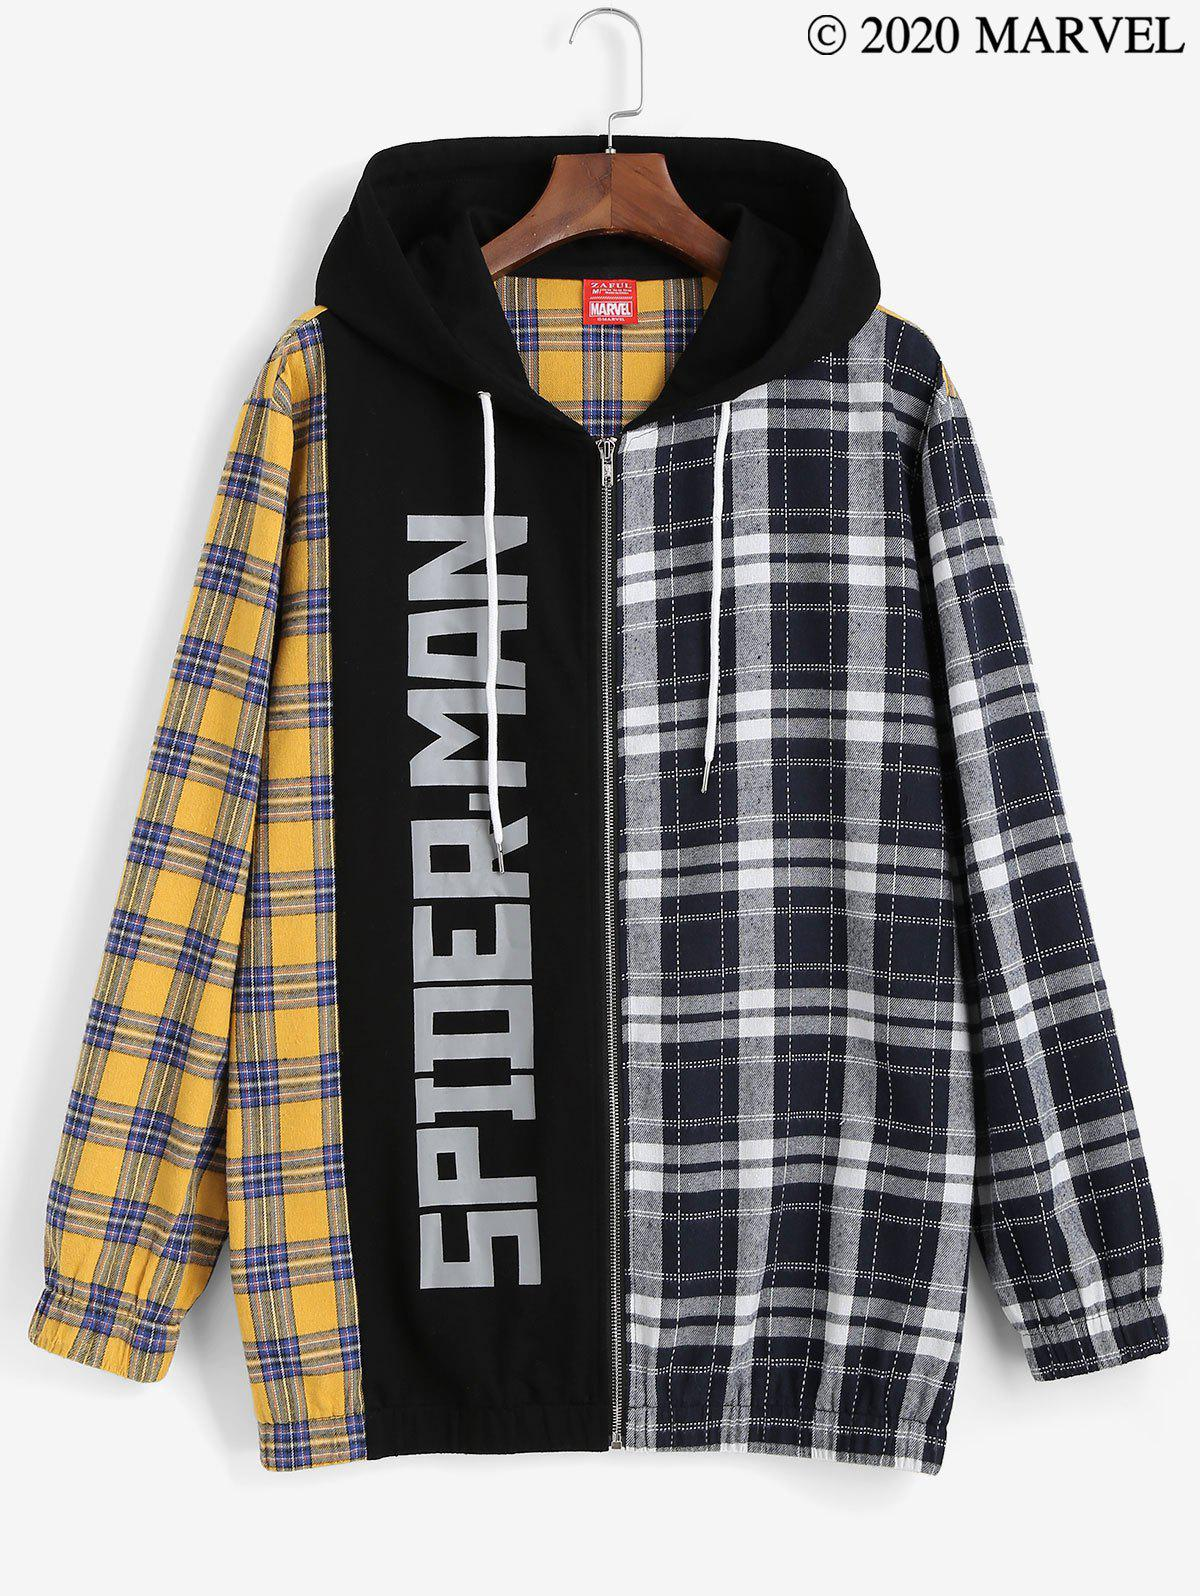 Marvel Spider-Man Plaid Zip Up Hoodie - multicolor A XL